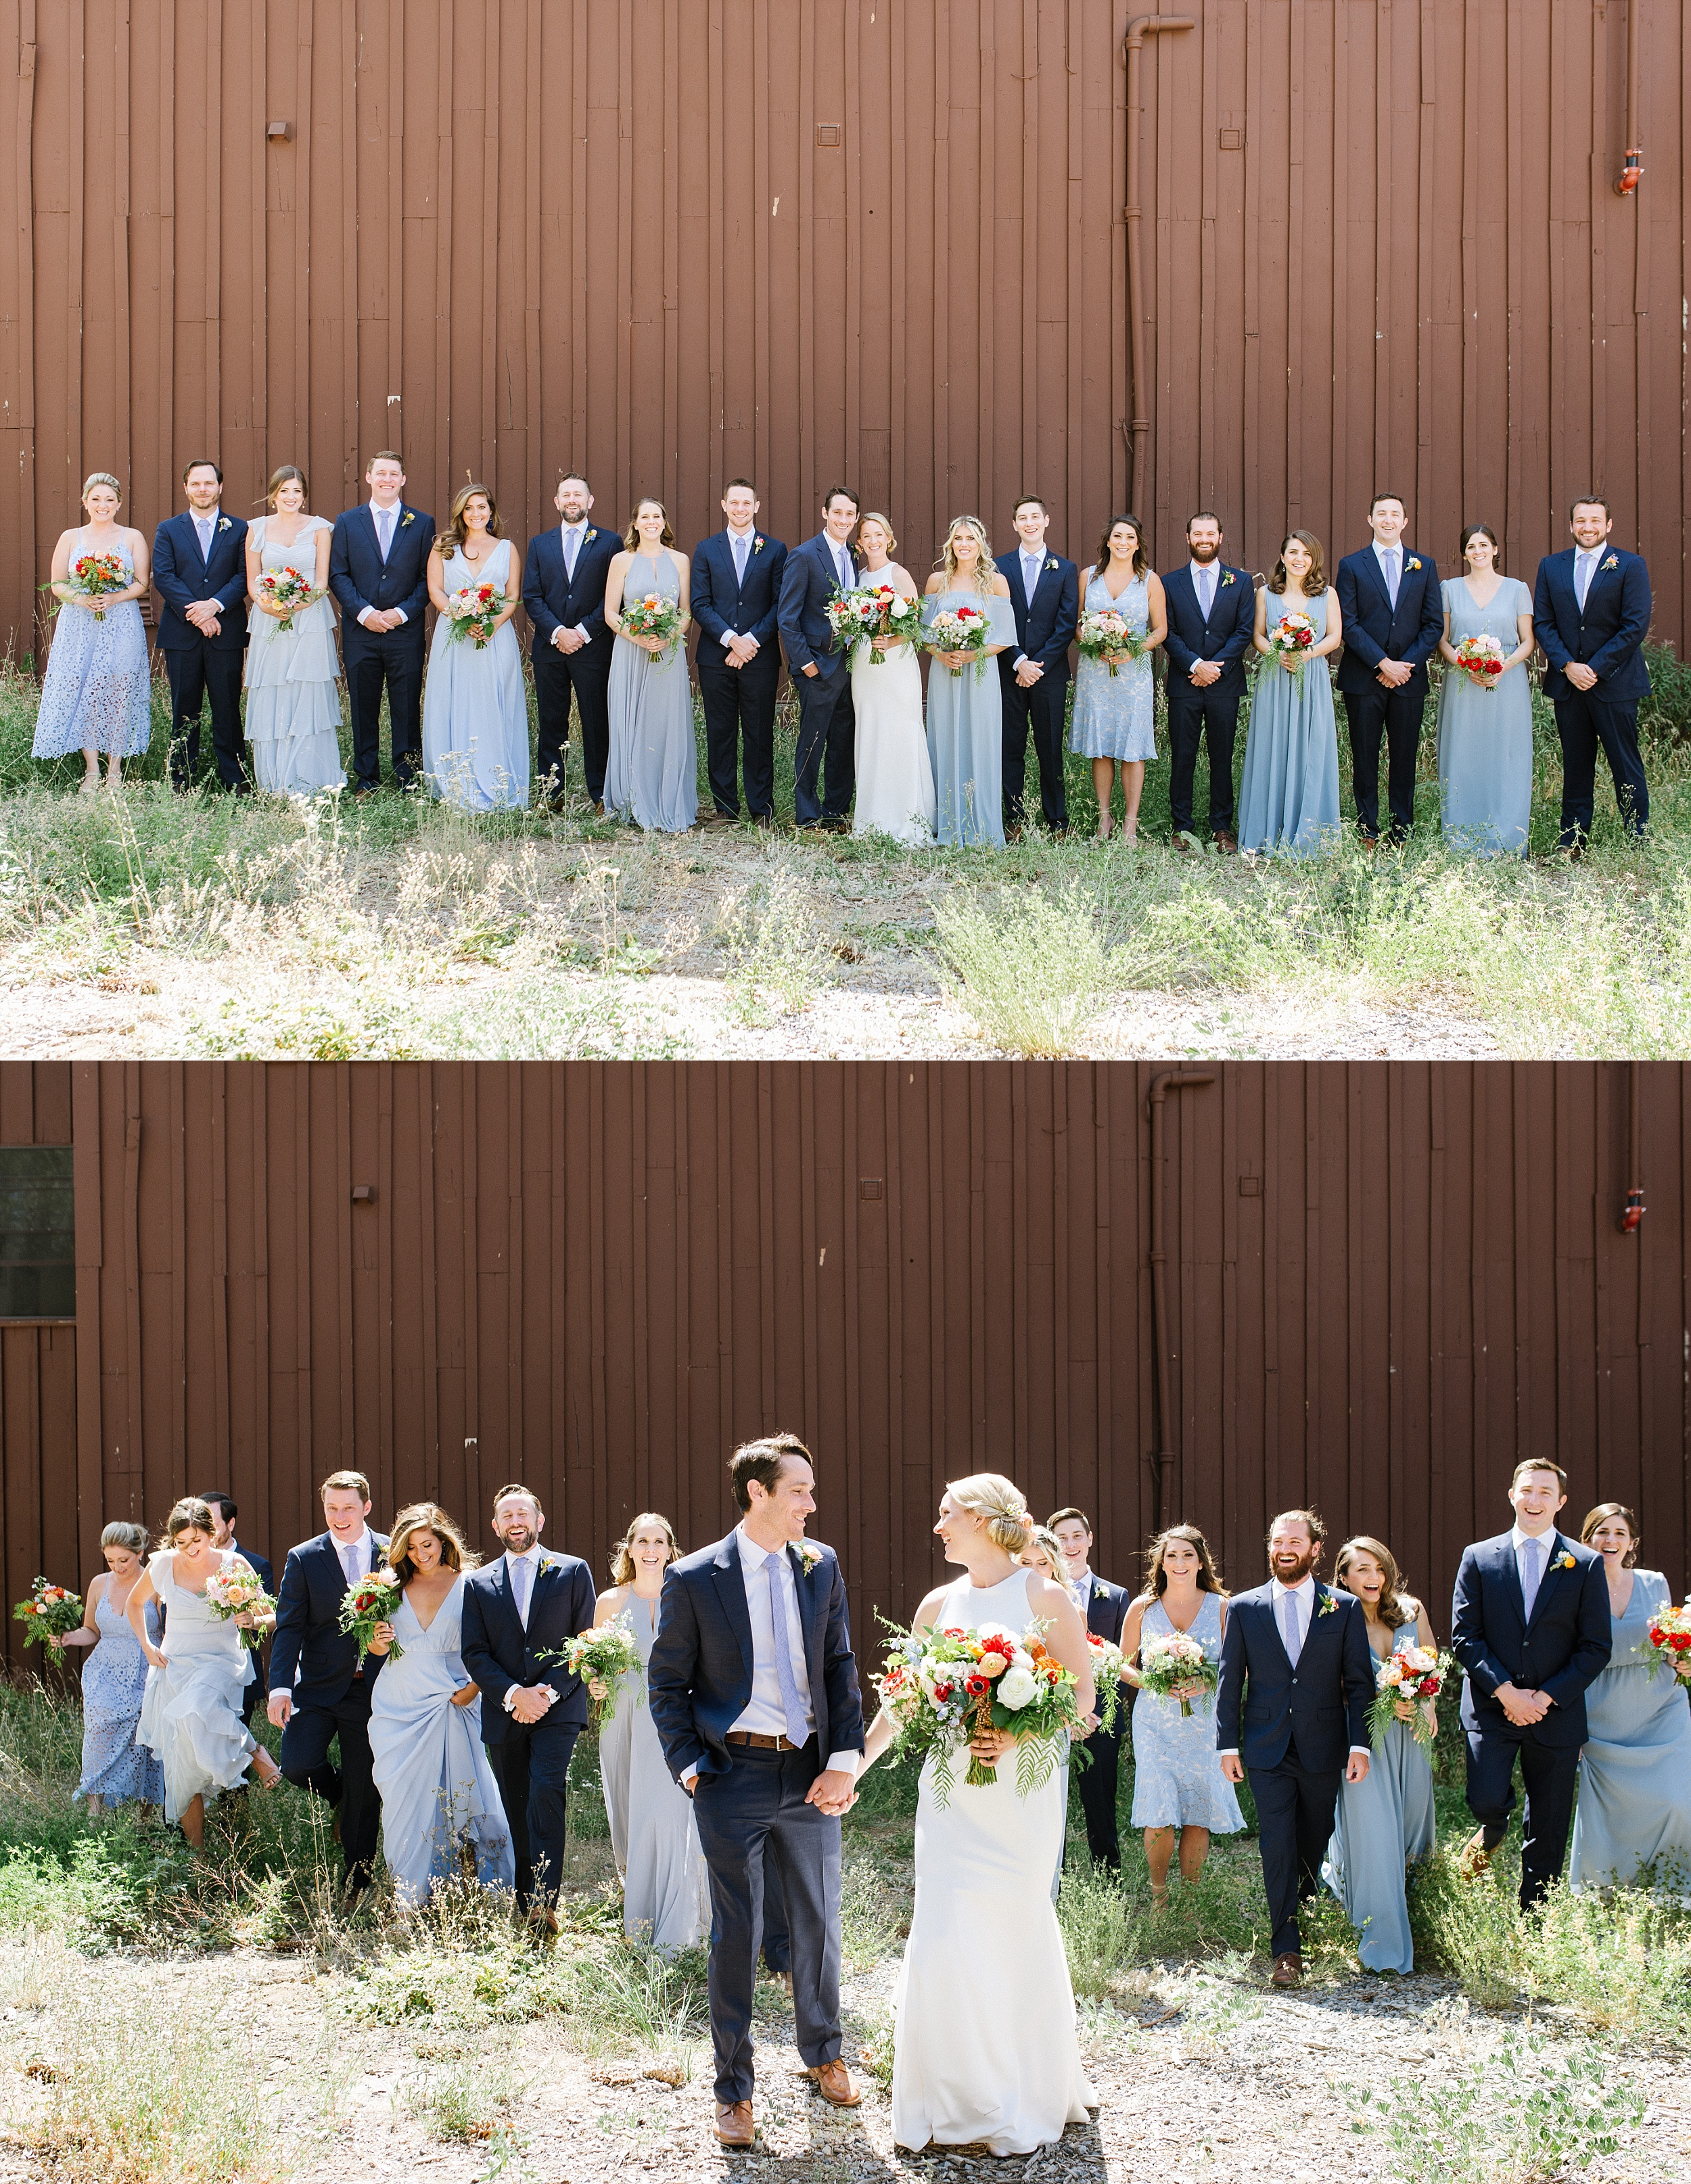 Sugar-Bowl-tahoe-wedding-sallyjohn_chelsea-dier-photography_0014.jpg